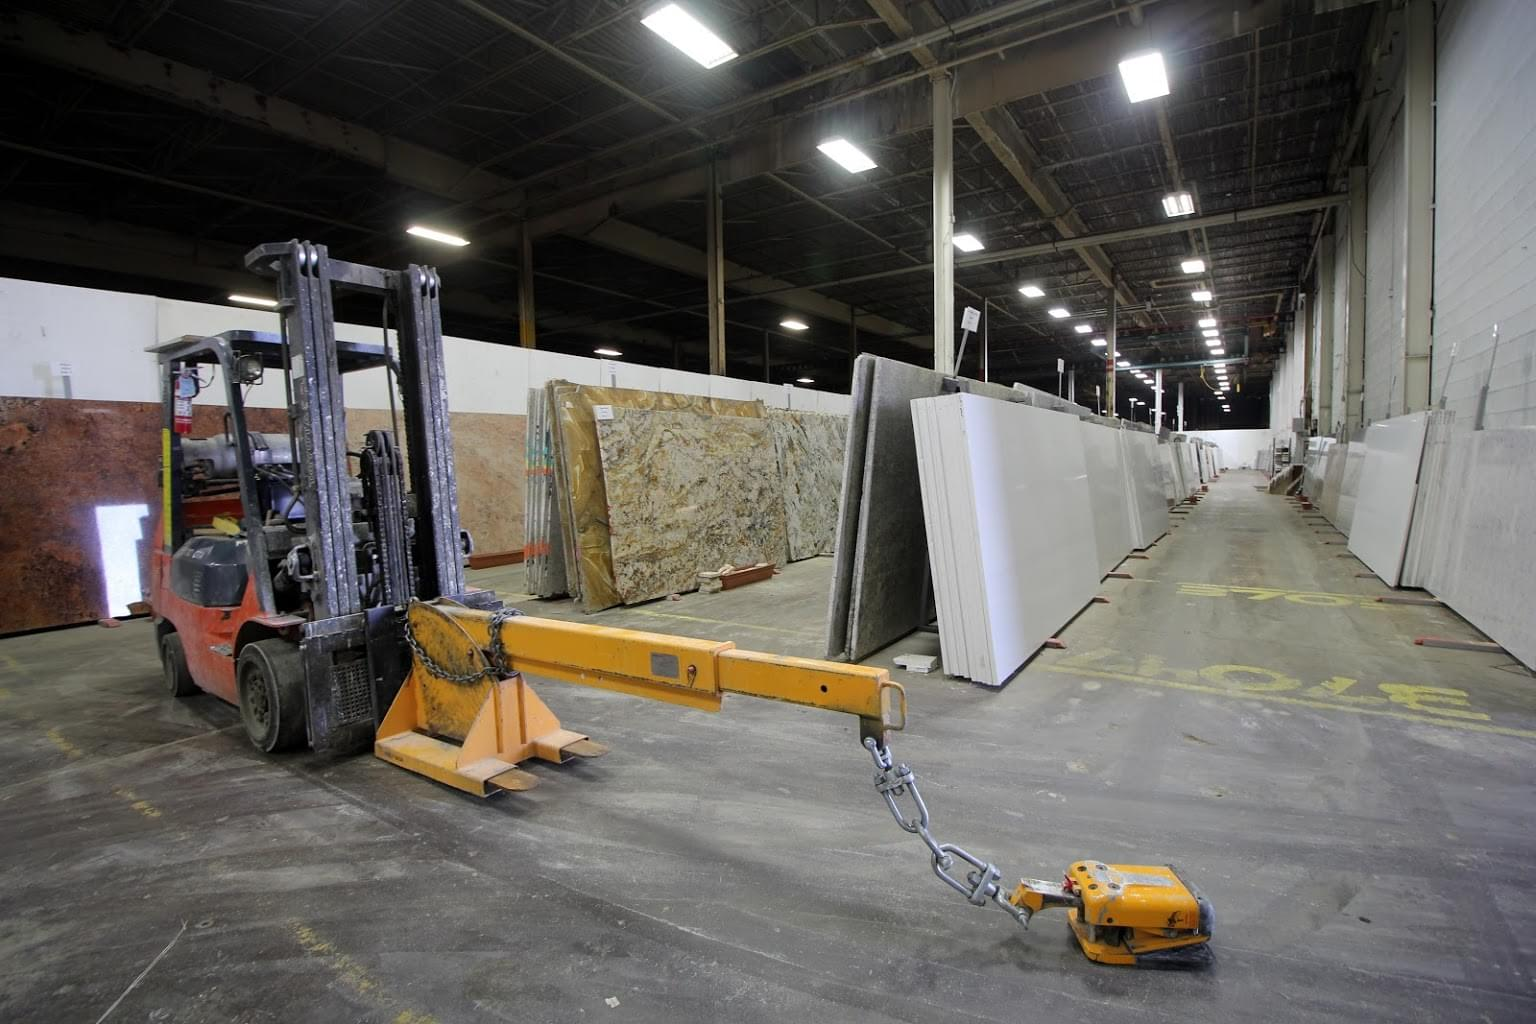 Onur Marble & Granite Building Materials Store in Fairless Hills, PA forklift marble slabs warehouse